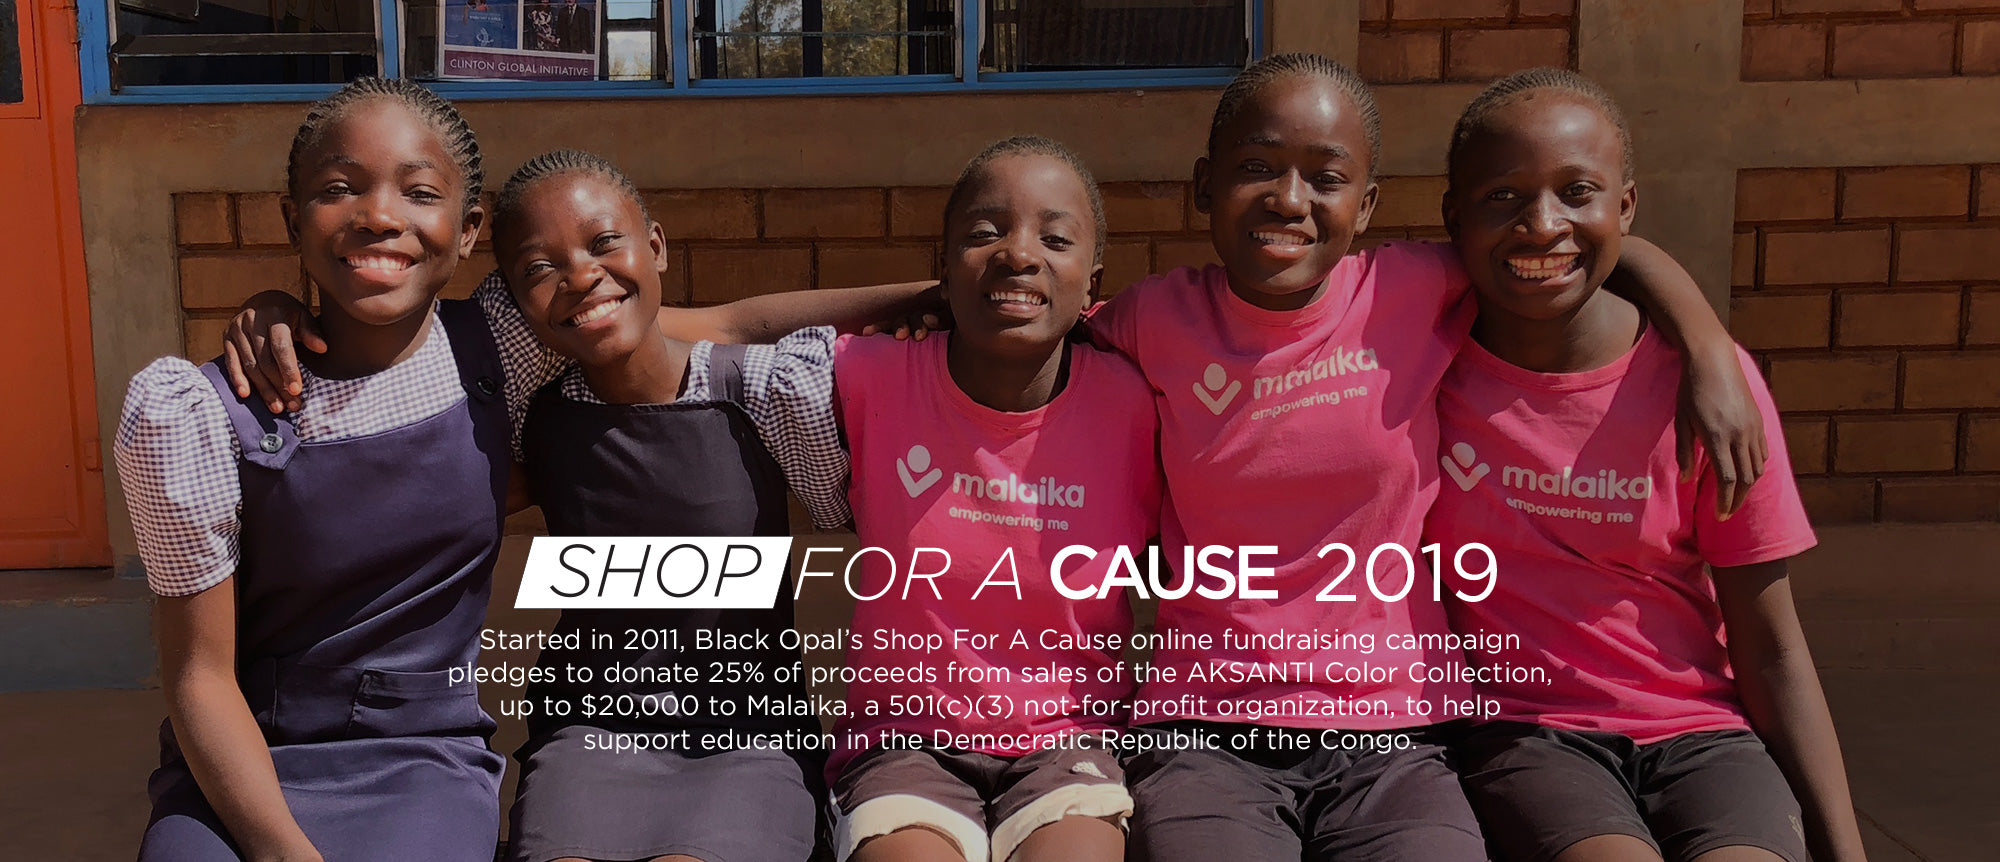 Shop For a Cause 2019